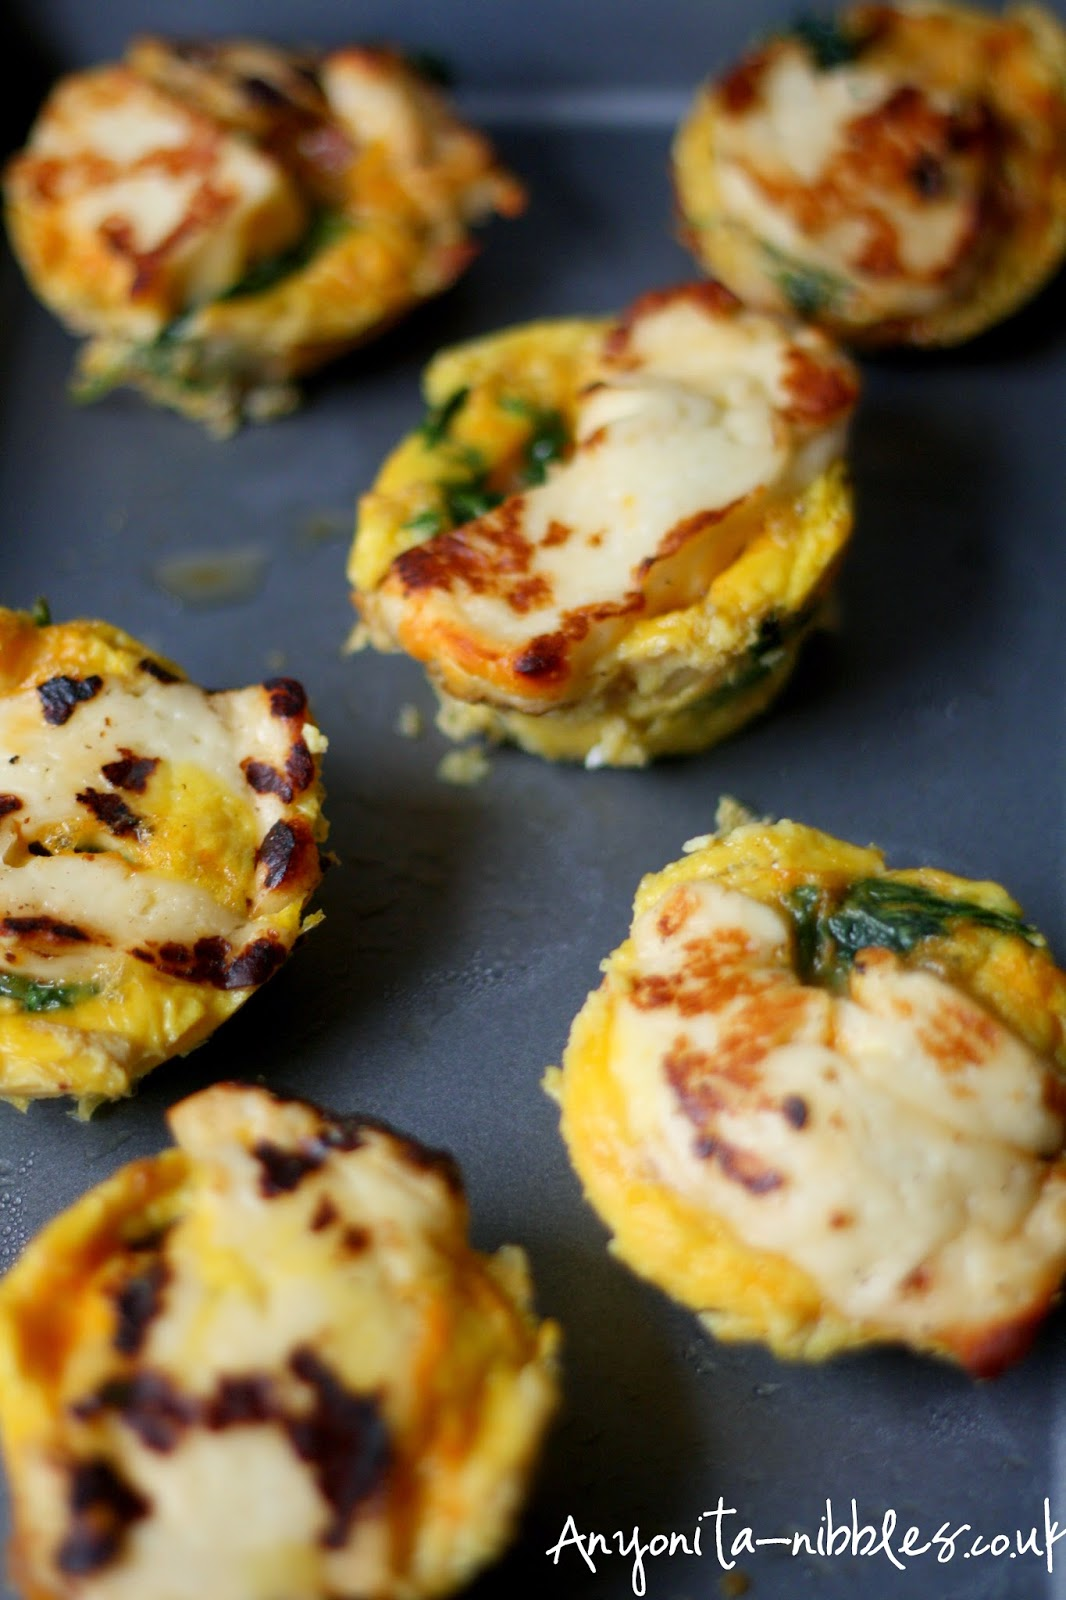 Gluten free halloumi frittatas by Anyonita-nibbles.co.uk from Anyonita-nibbles.co.uk